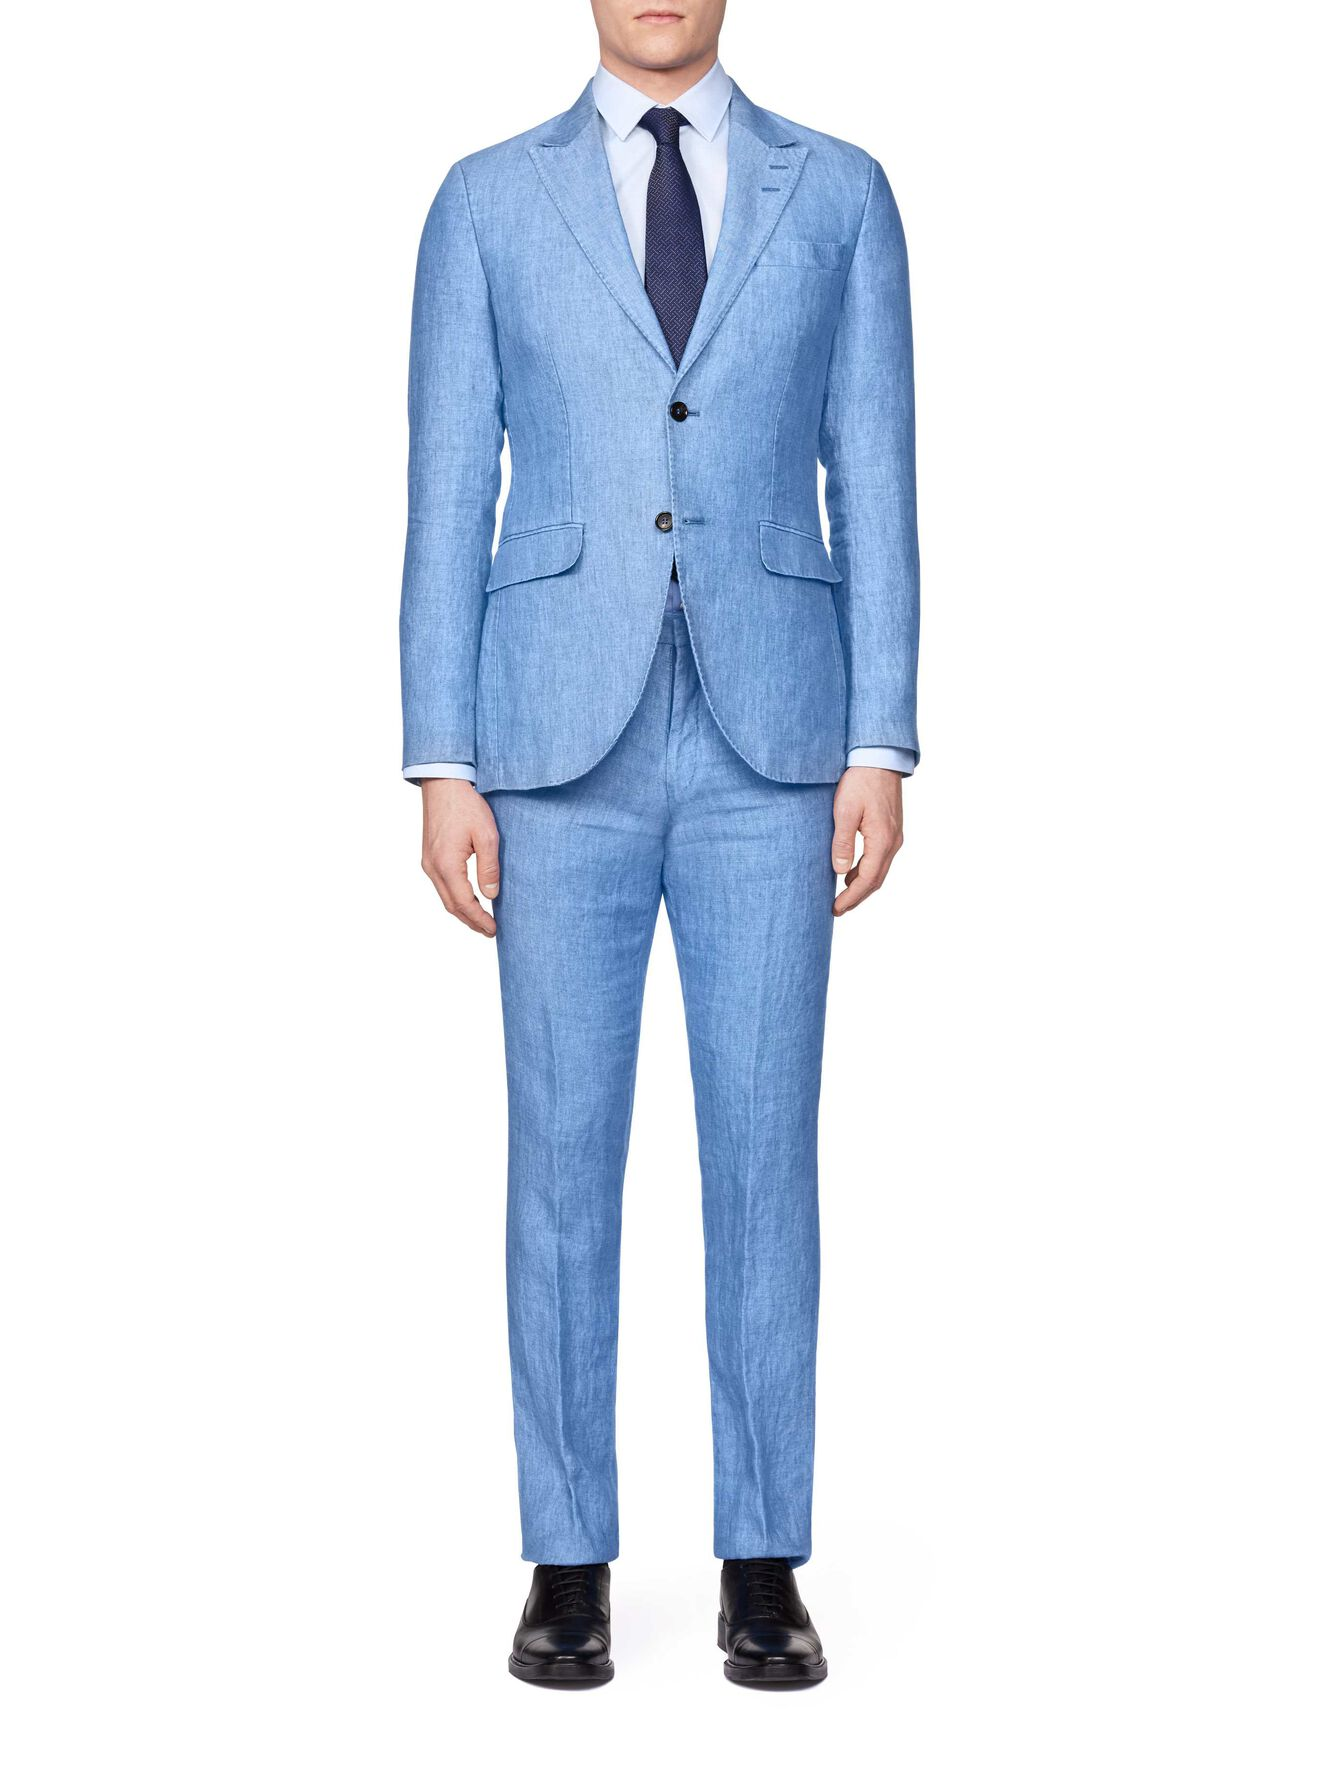 Lamar Gw Suit in Wave from Tiger of Sweden